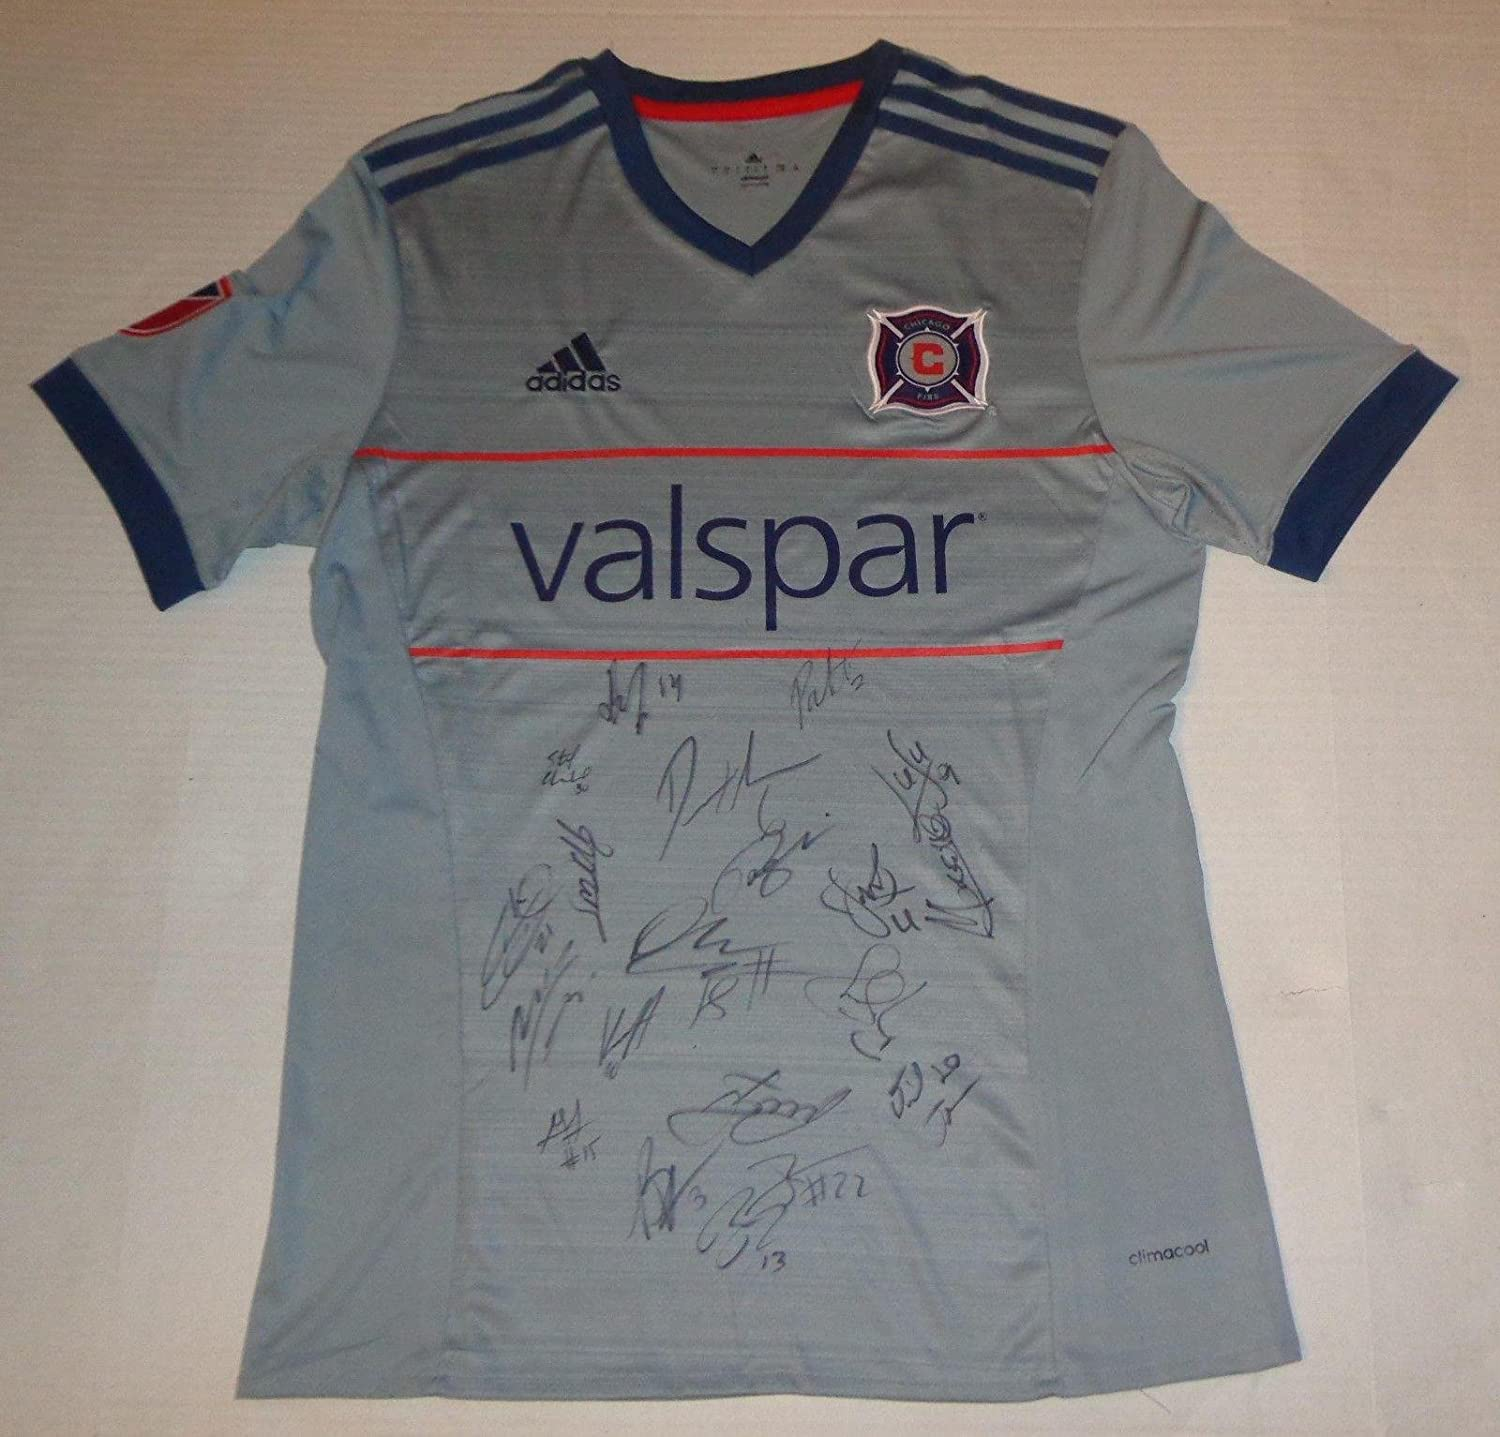 122ec48f531 Chicago Fire 2018 team signed jersey MLS Bastian Schweinsteiger autographed  - Autographed Soccer Jerseys at Amazon's Sports Collectibles Store